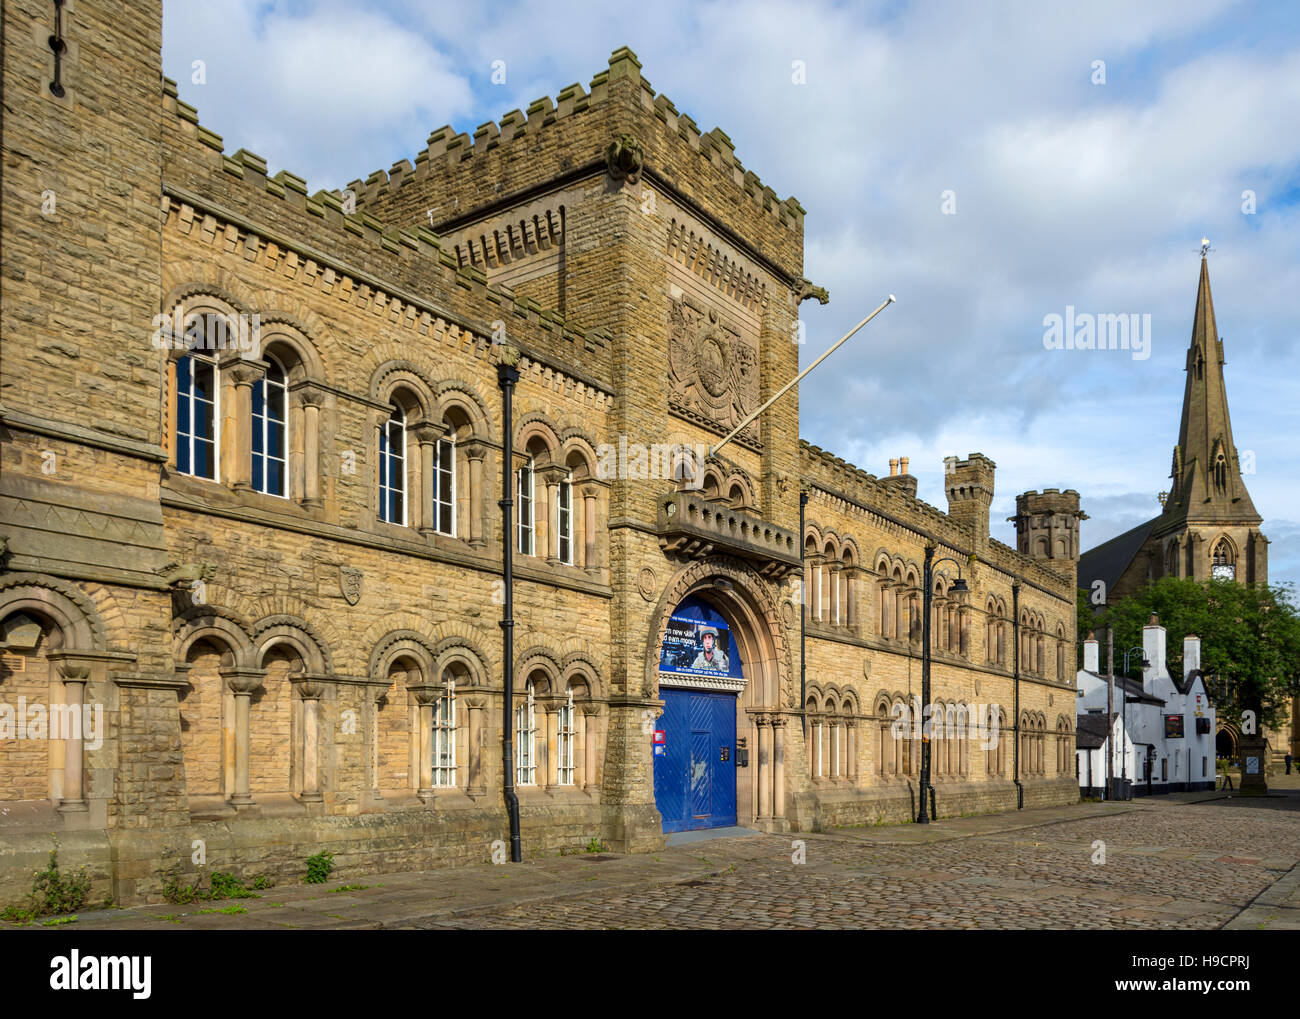 The Castle Armoury building (1868), Castle Street, Bury, Greater Manchester, England, UK - Stock Image